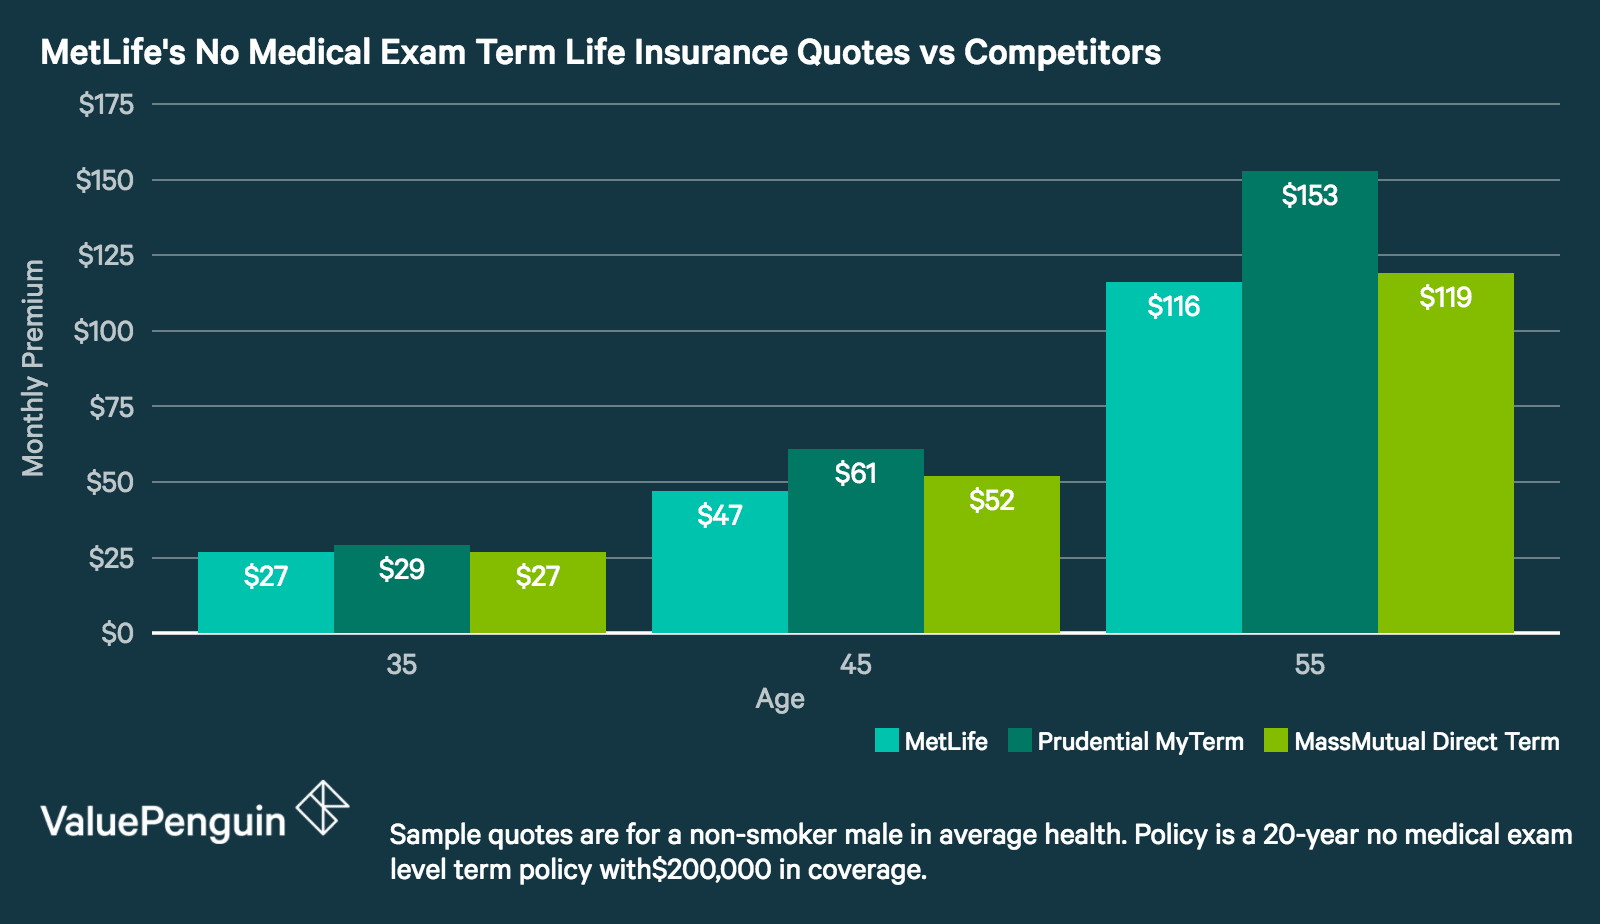 No Exam Life Insurance Quotes Metlife Life Insurance Review Few Coverage Options And High Rates